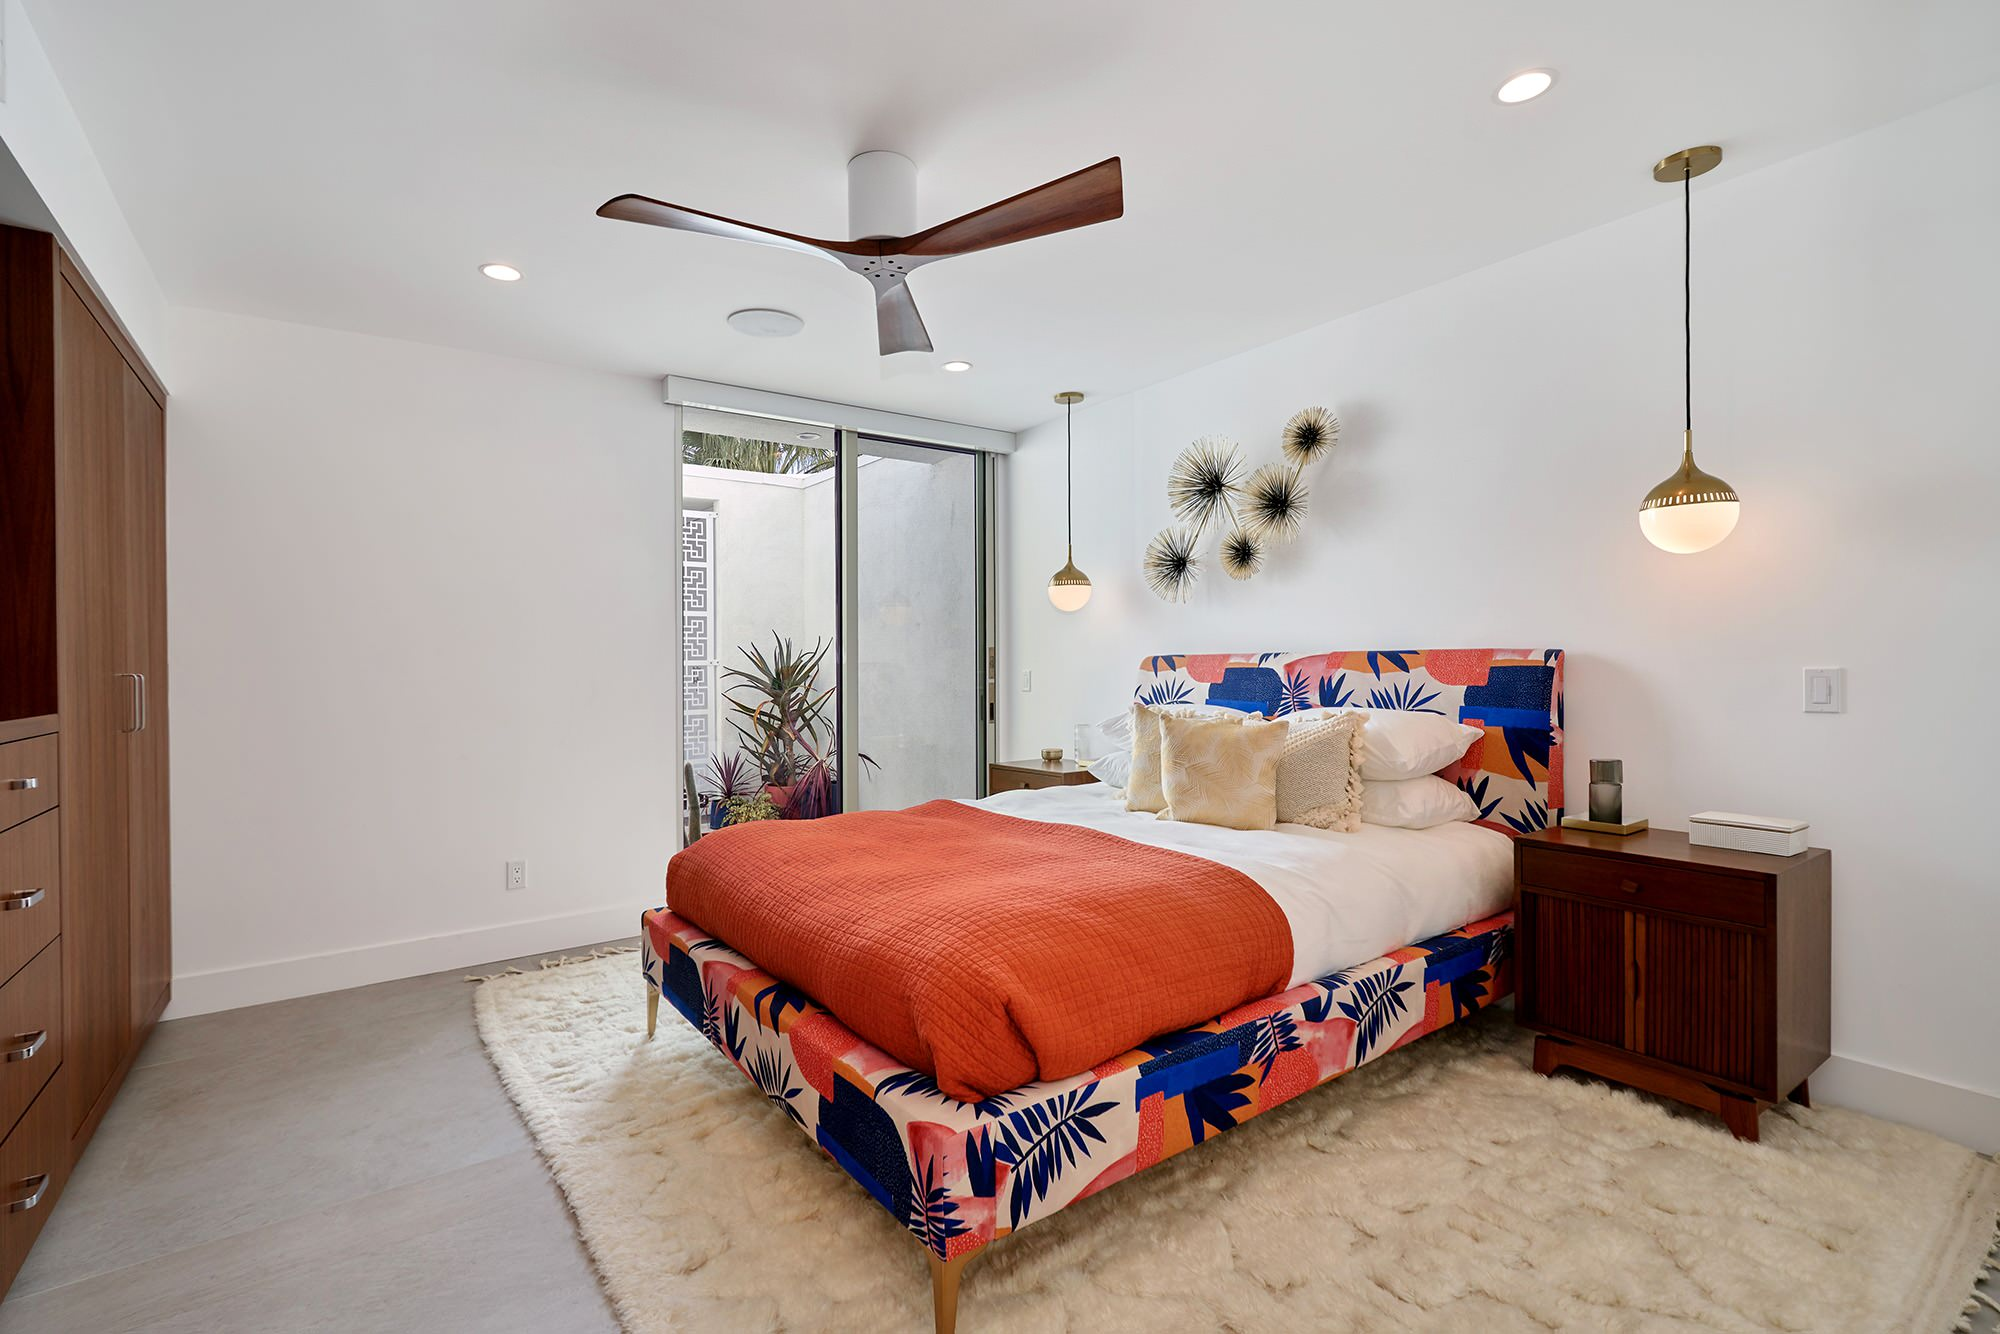 75 Beautiful Bedroom Pictures Ideas February 2021 Houzz